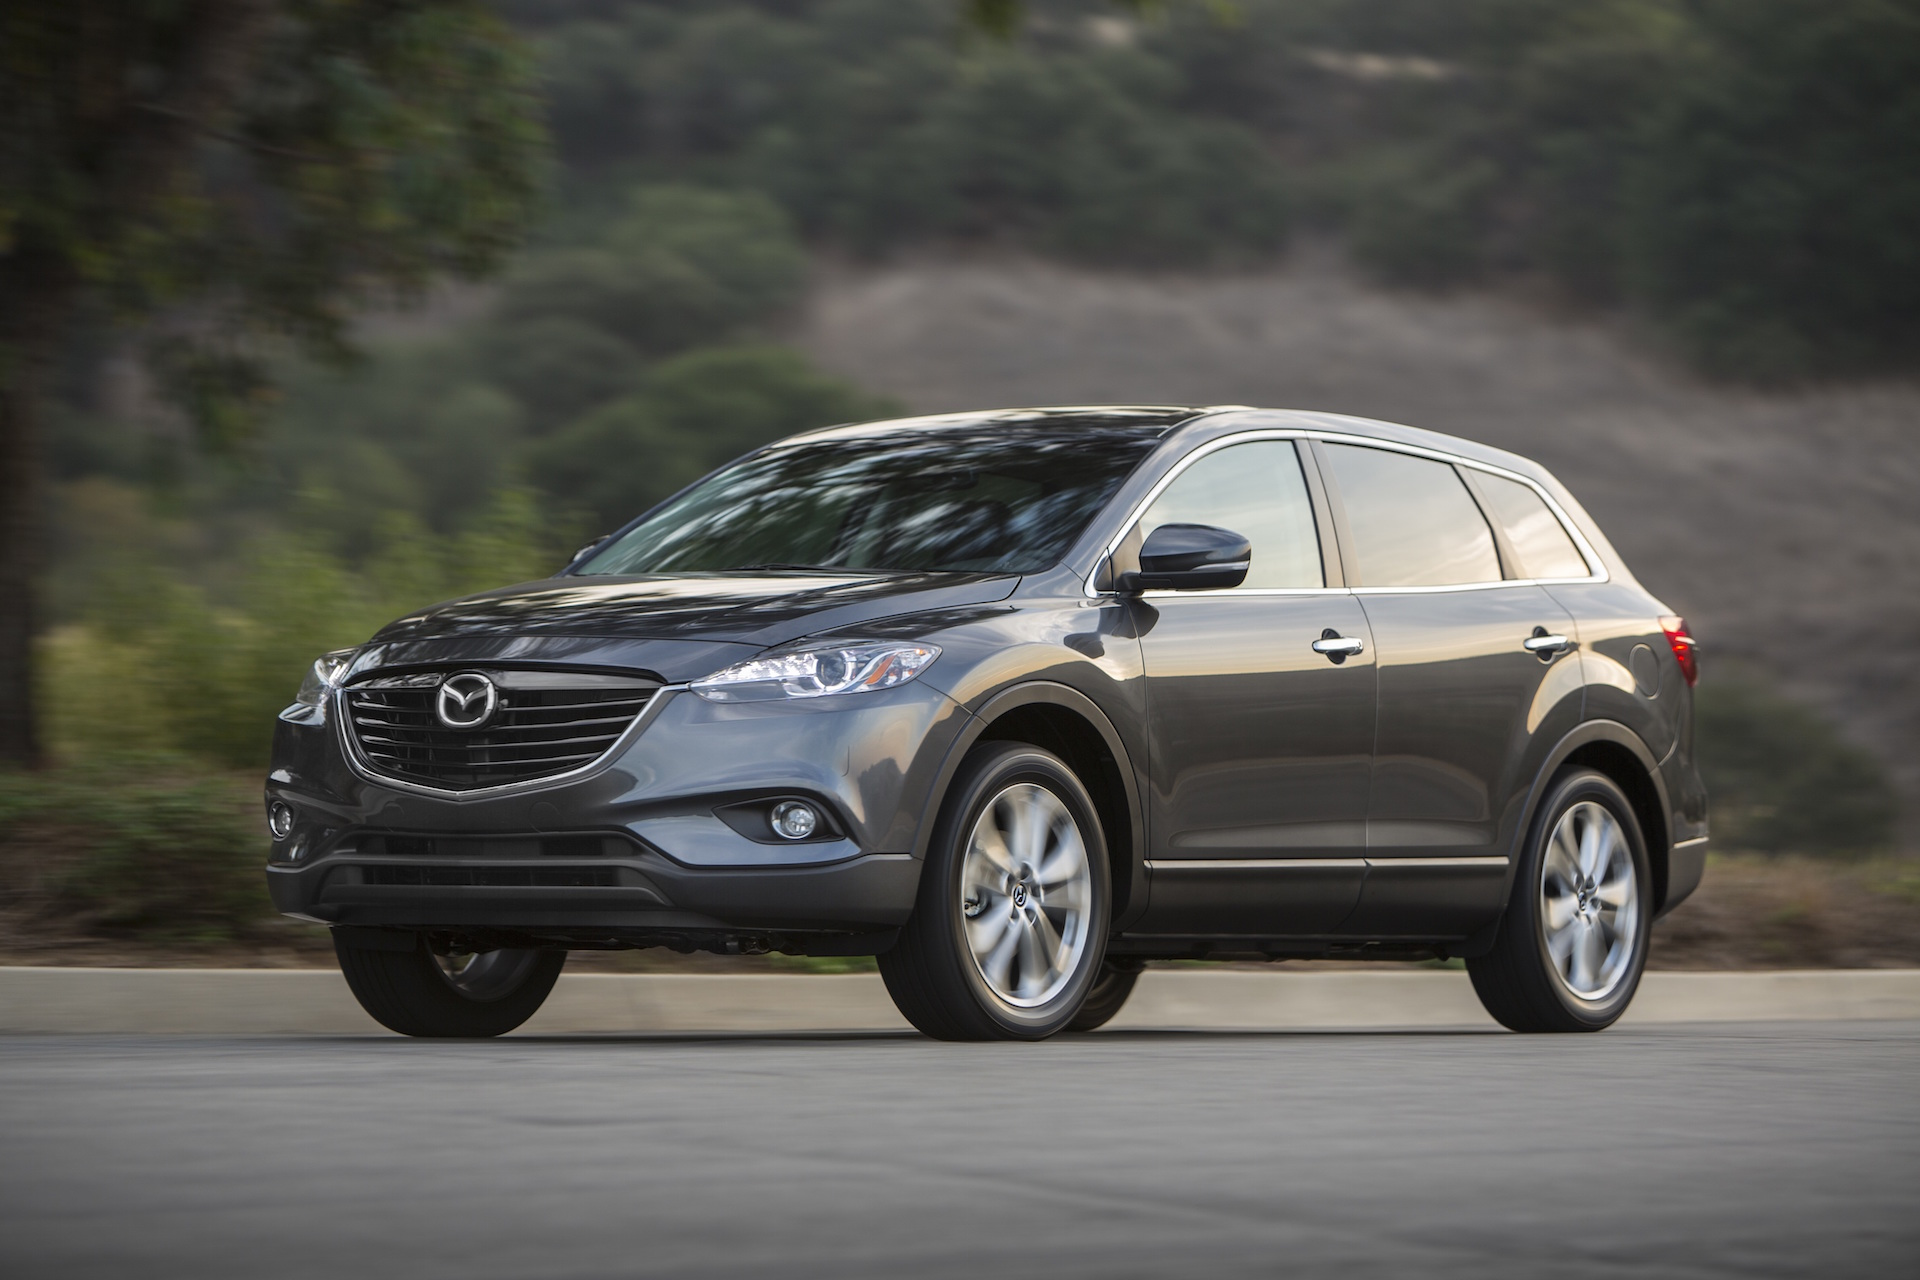 2015 mazda cx 9 review ratings specs prices and photos the car connection. Black Bedroom Furniture Sets. Home Design Ideas